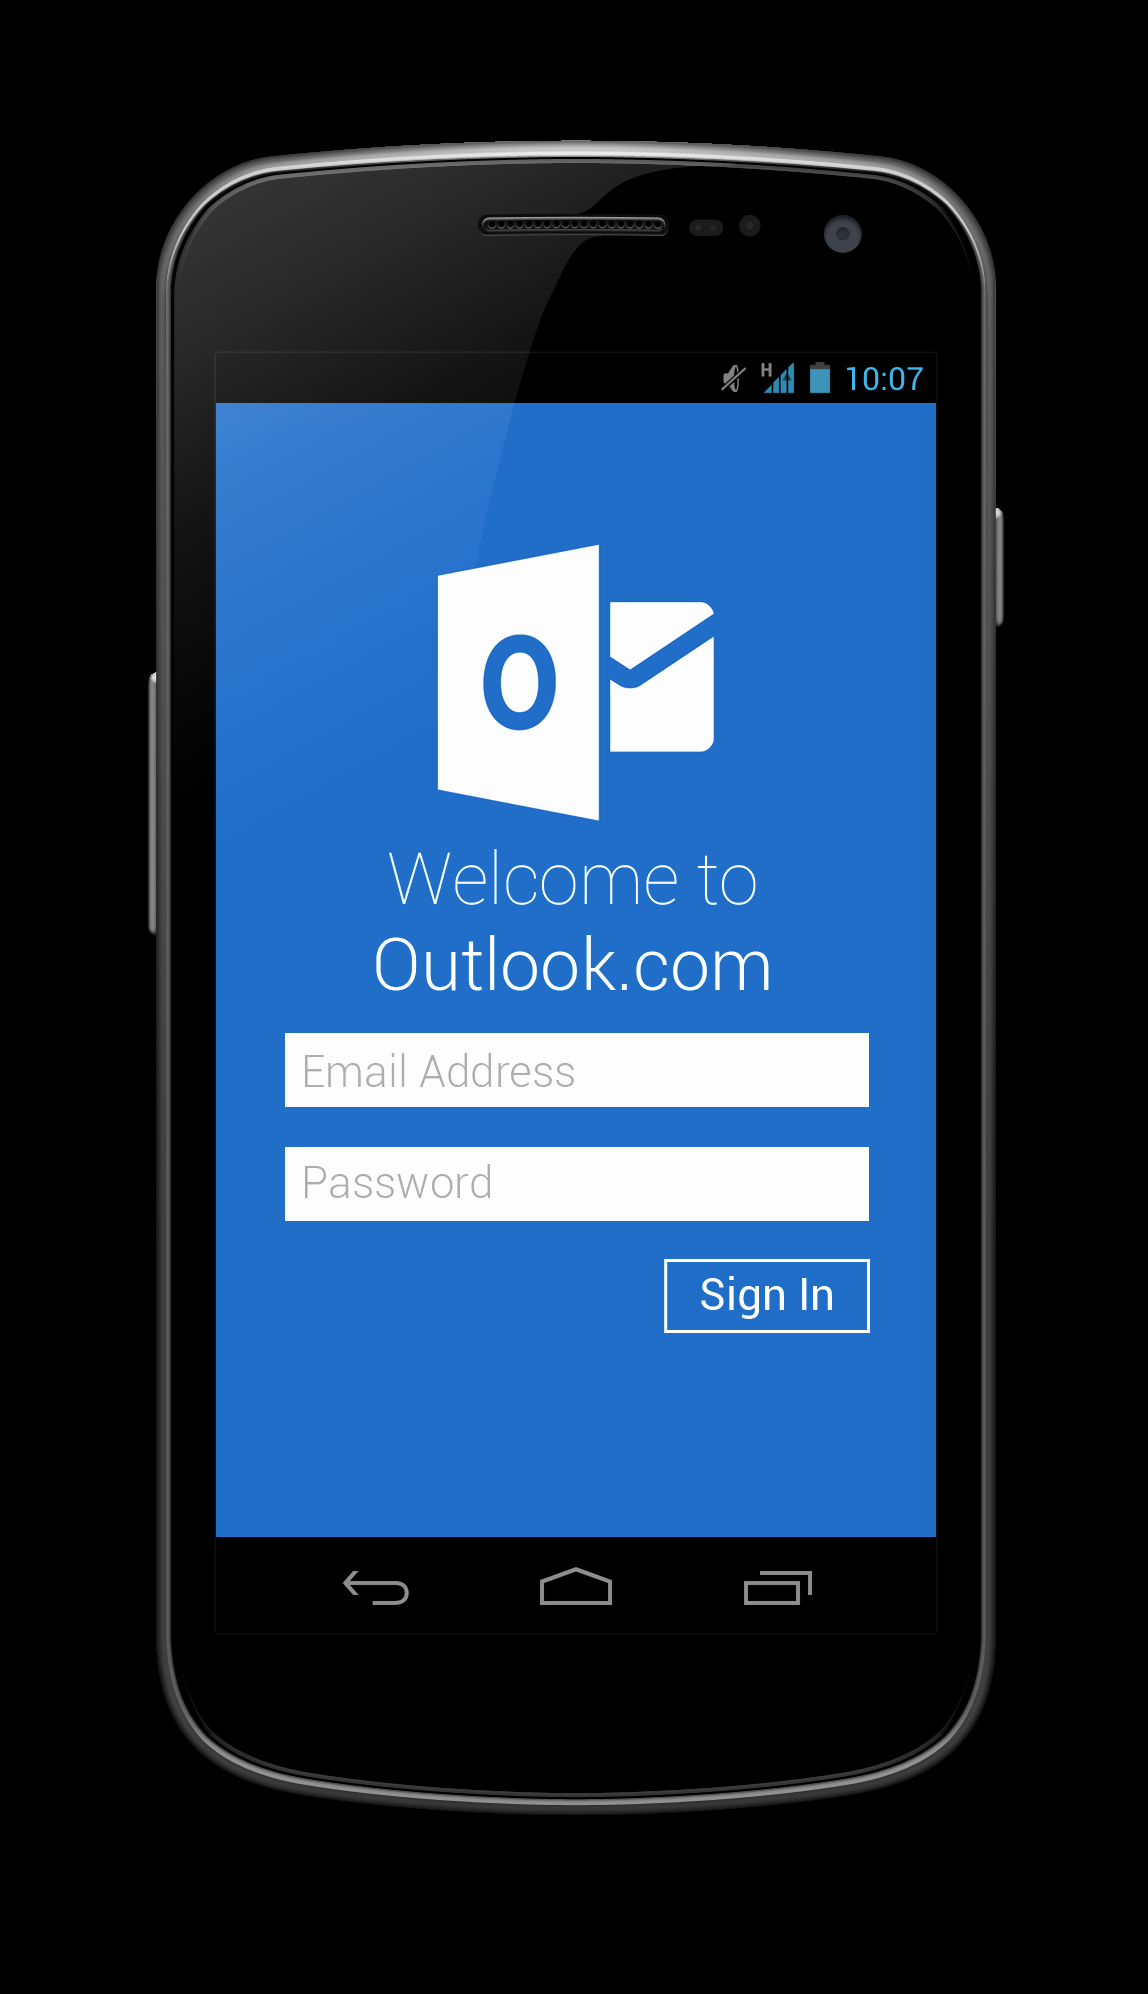 Outlook Com Mail Sign In Elegant Outlook Para android – Blog Do Cassemiro